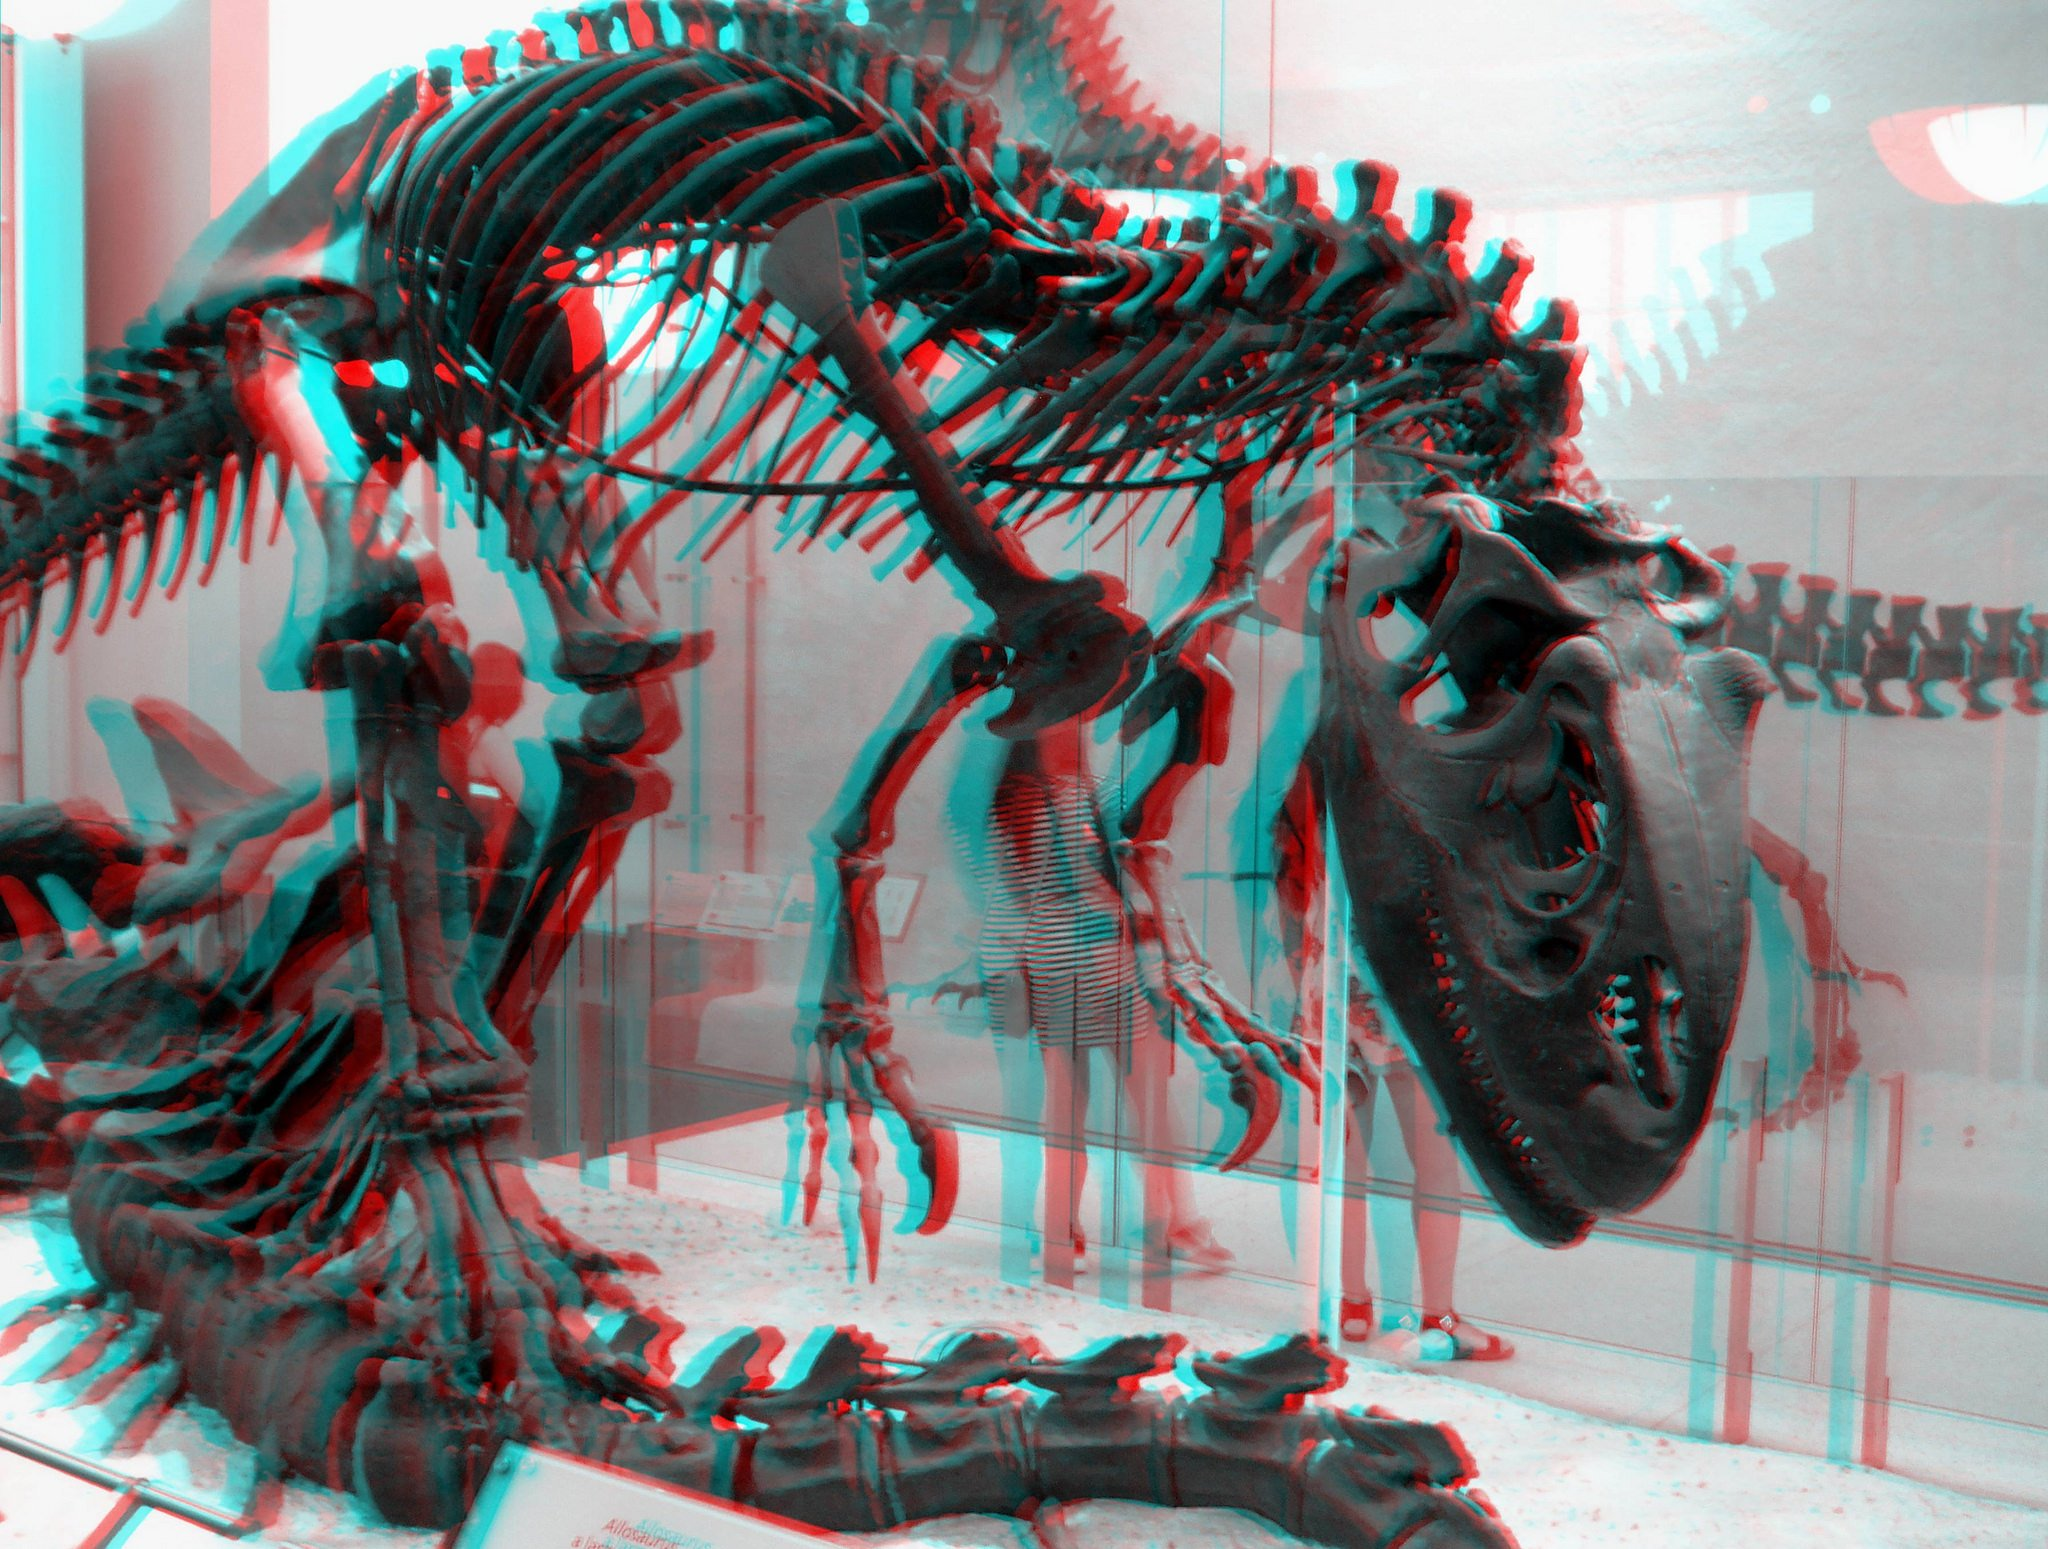 3D anaglyph Glasses wallpaper 2048x1549 424908 WallpaperUP 2048x1549